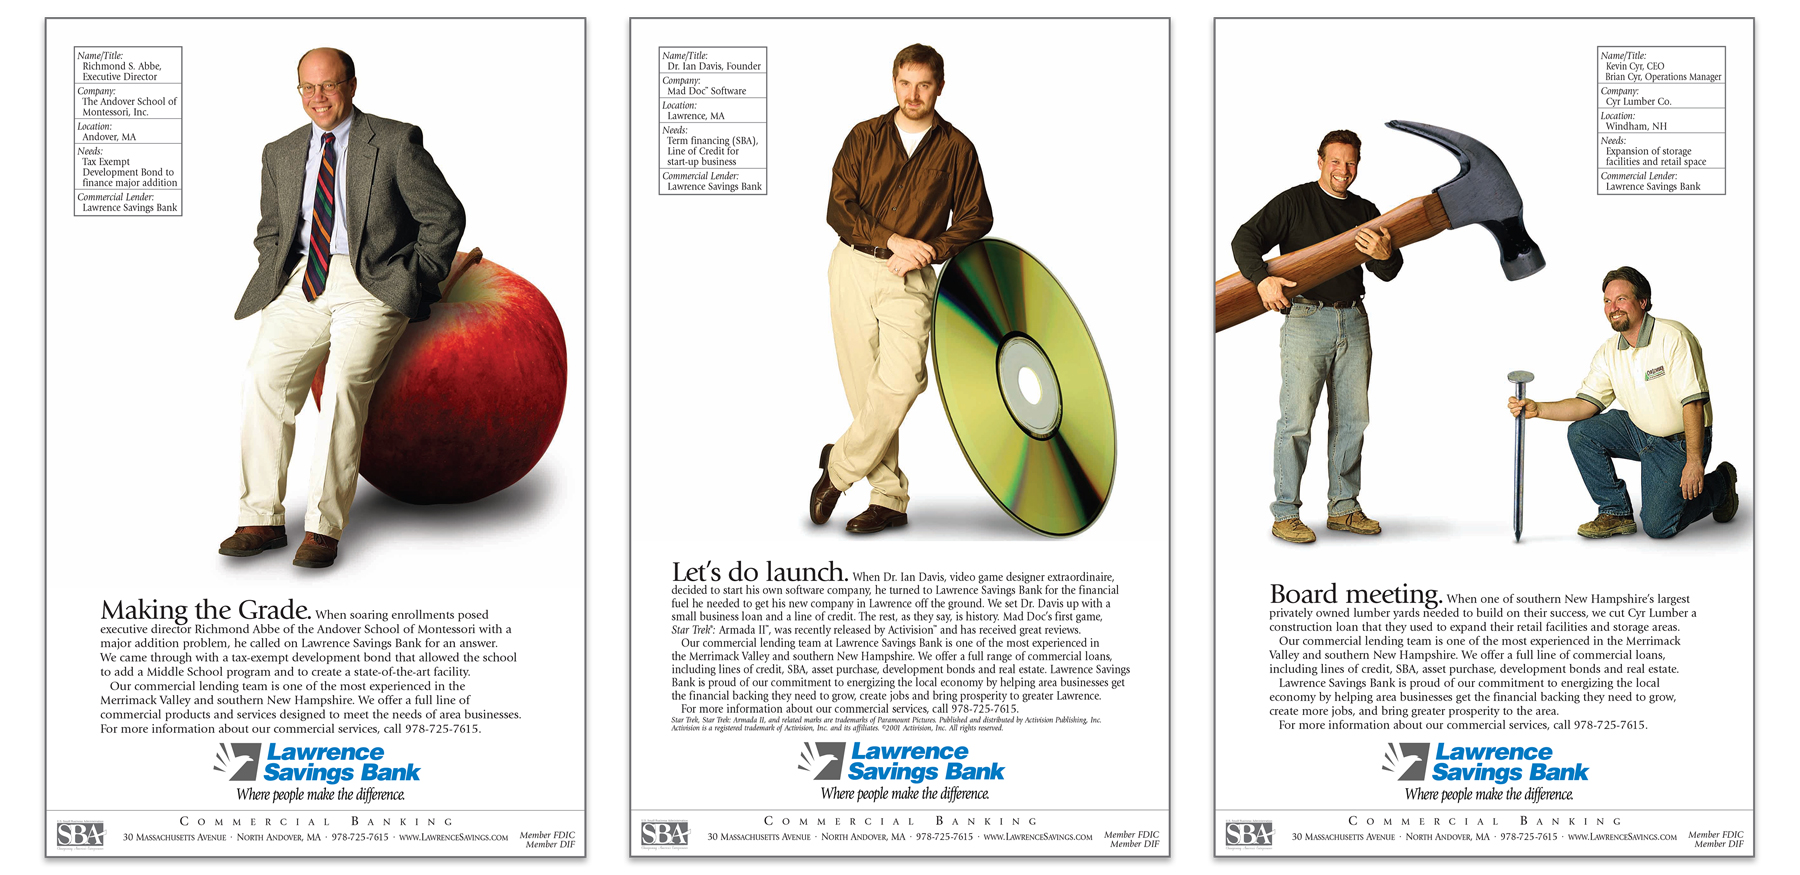 LSB Commercial Banking Ads